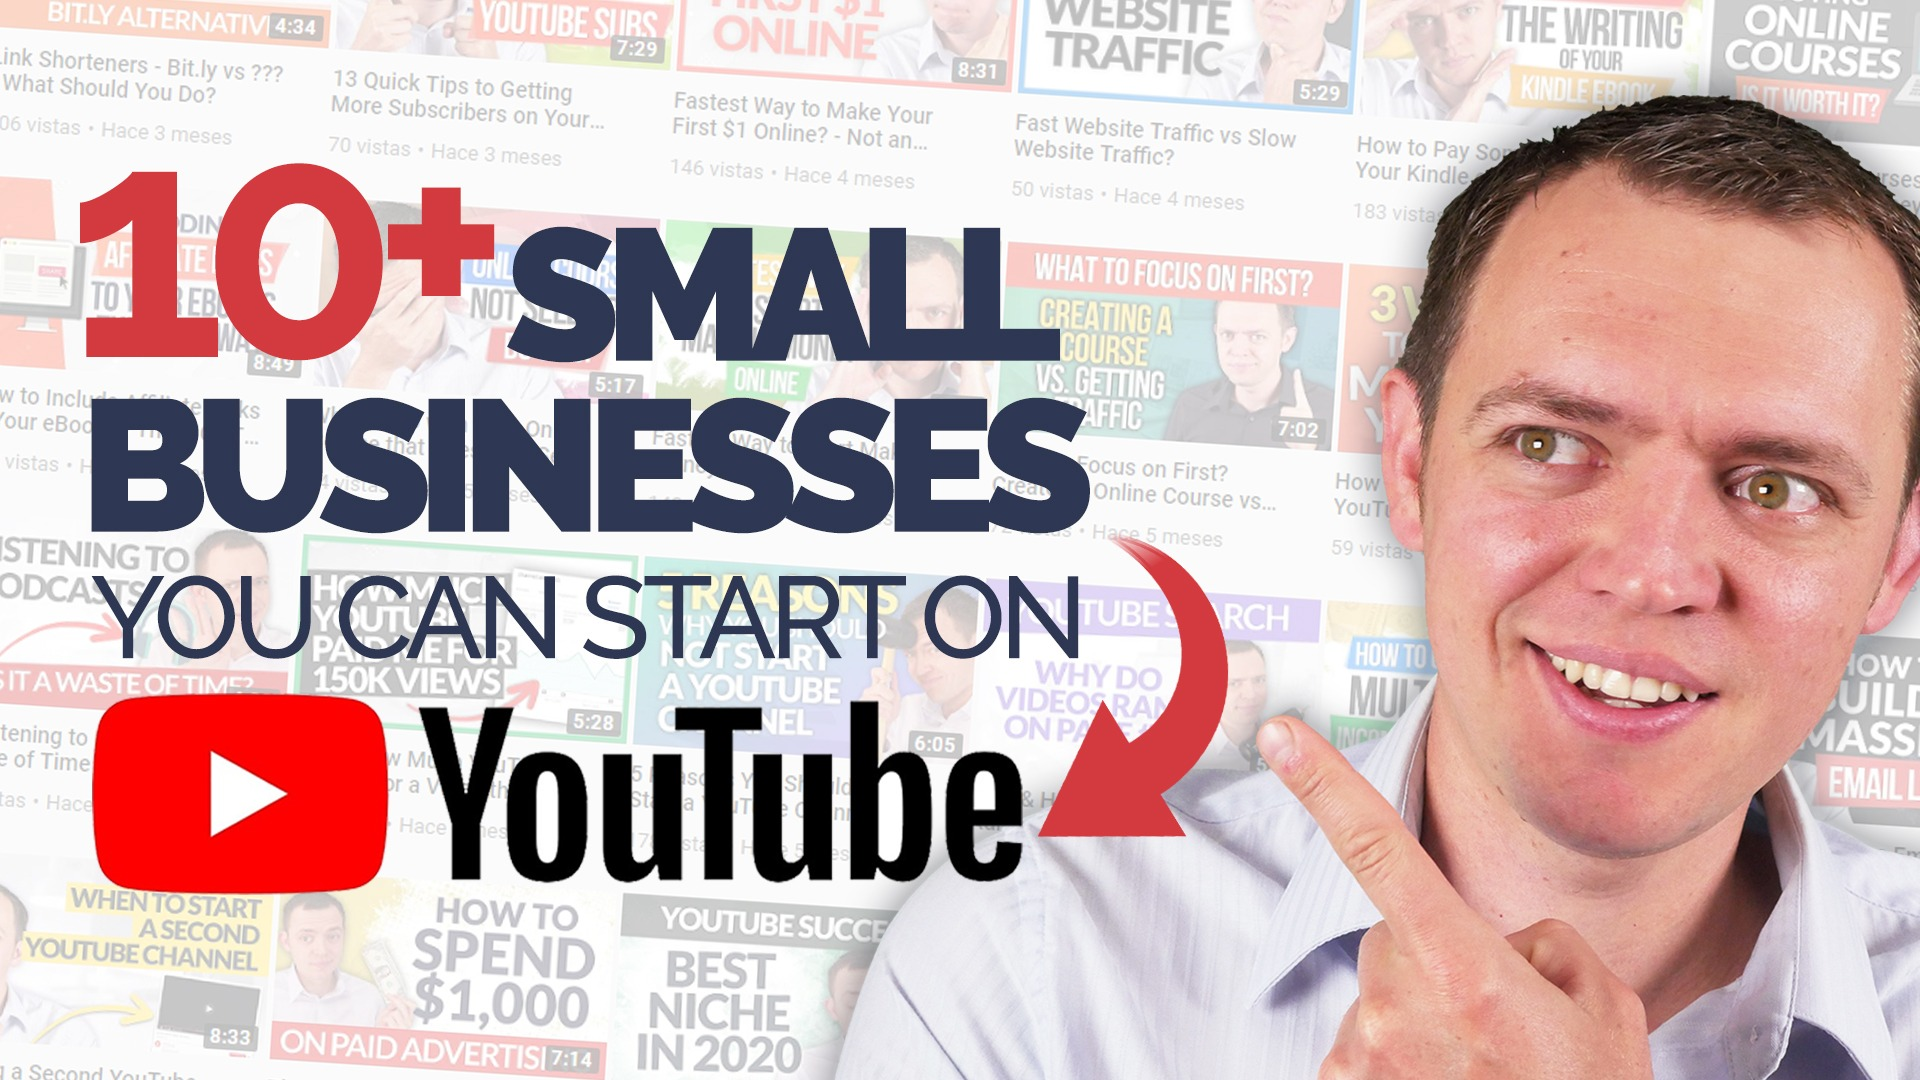 10+ Small Businesses You Can Start on YouTube